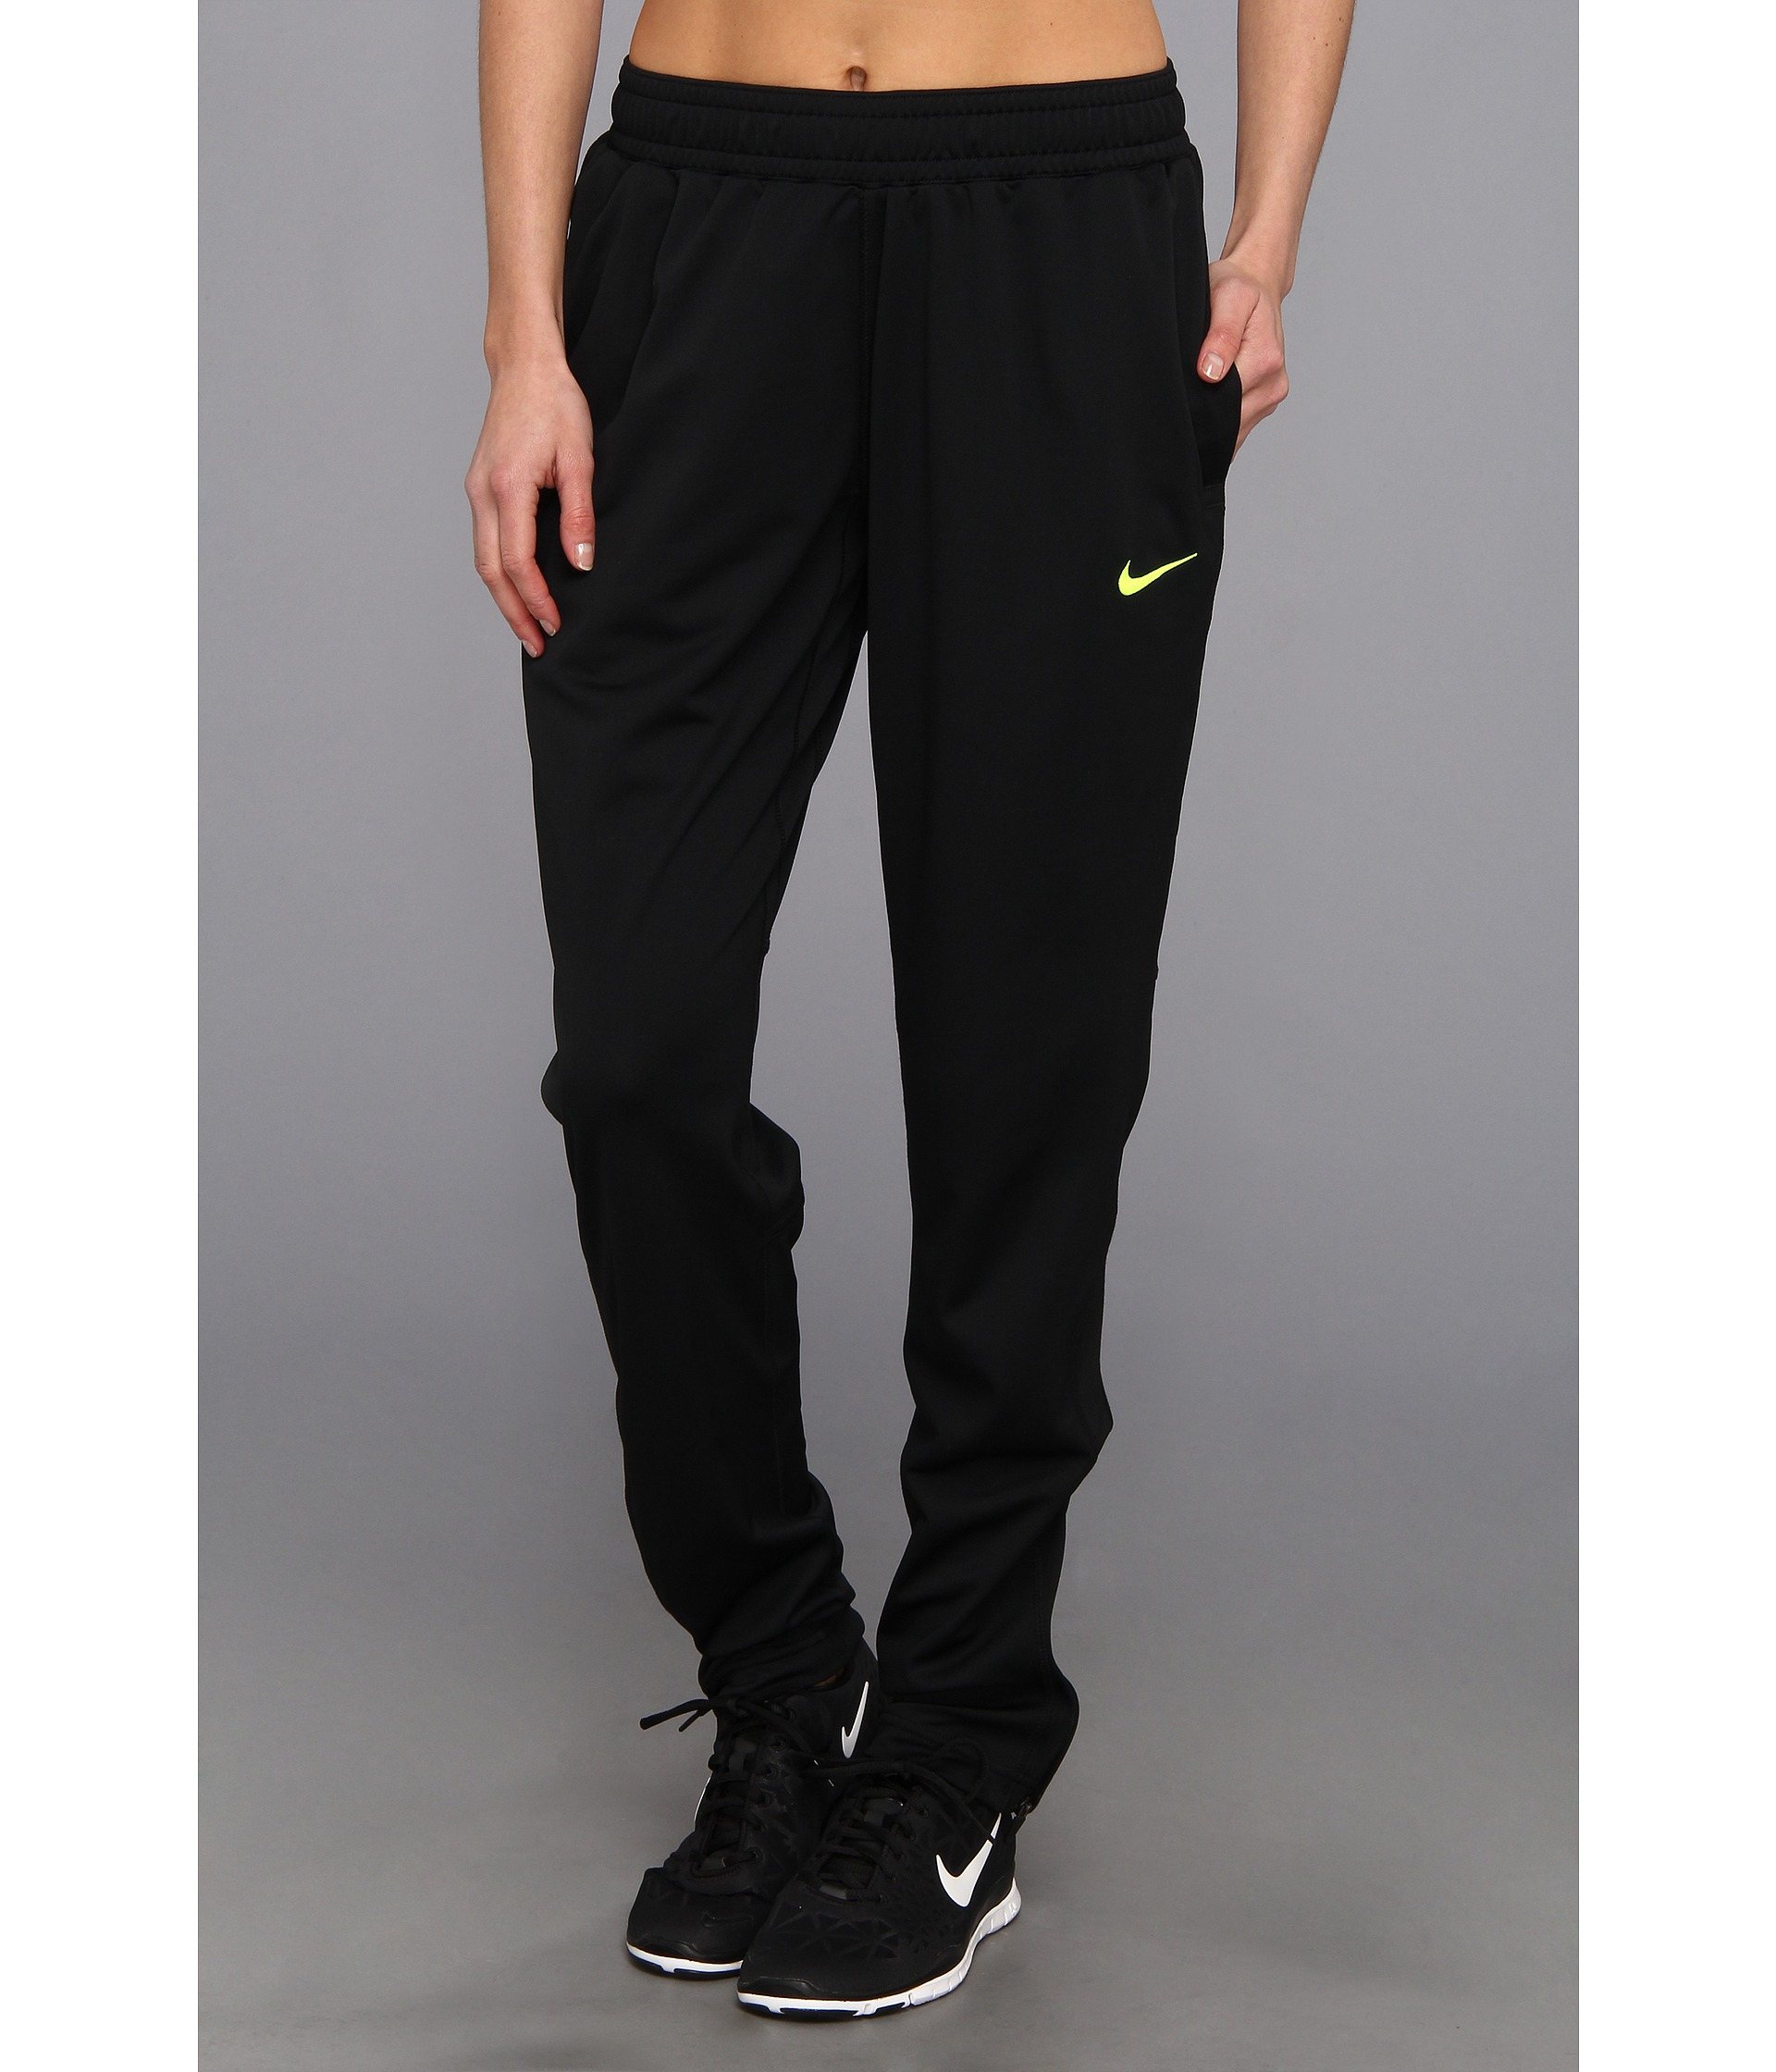 Cool Soccer Warm Up Pants Women Nike Basketball Warm Up Pants